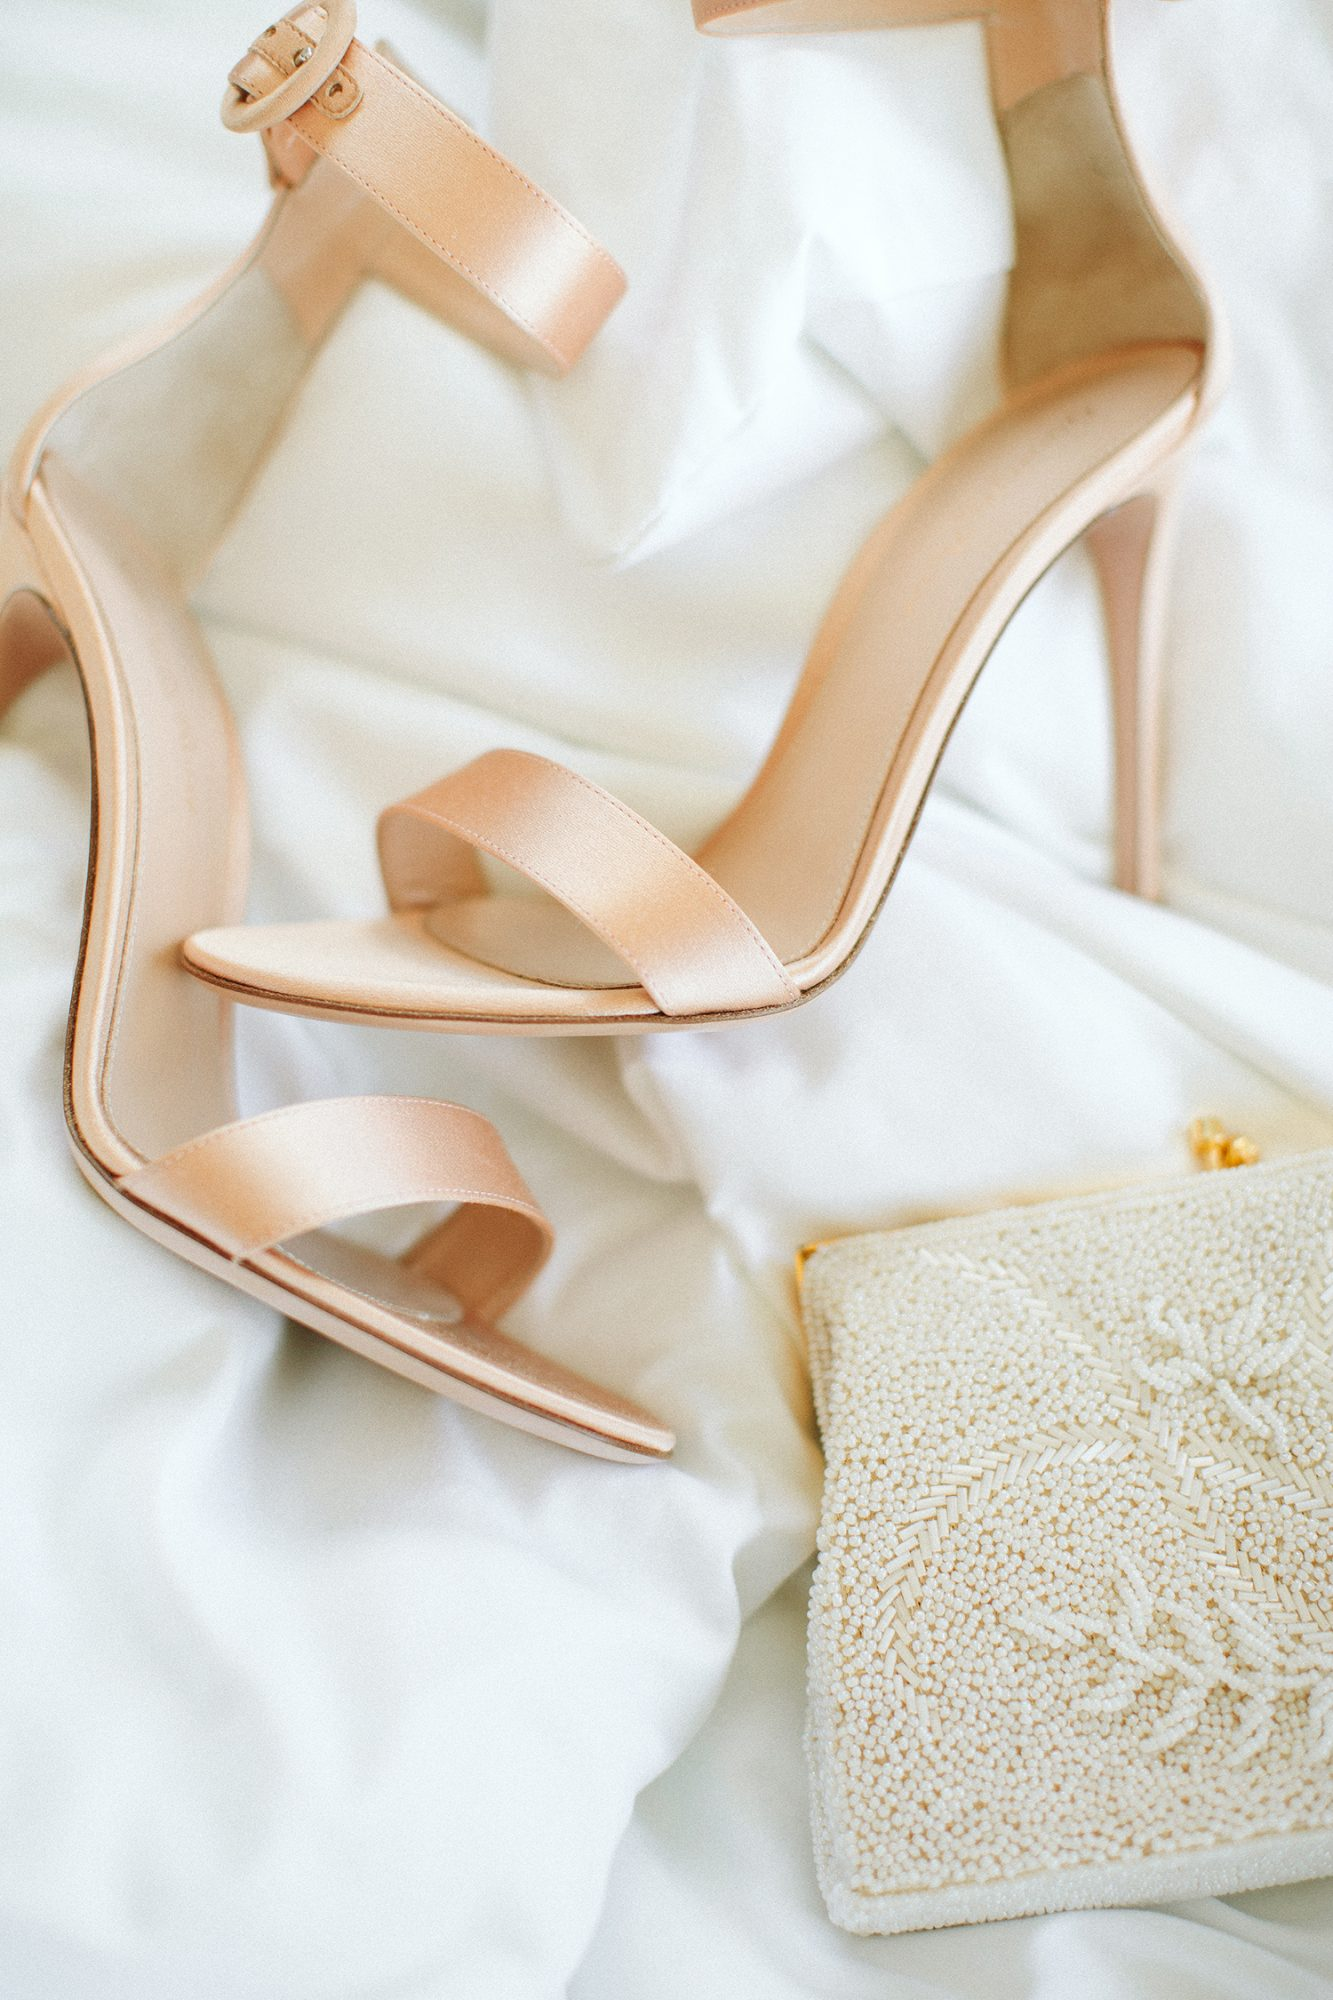 ashley basil wedding accessories brides shoes